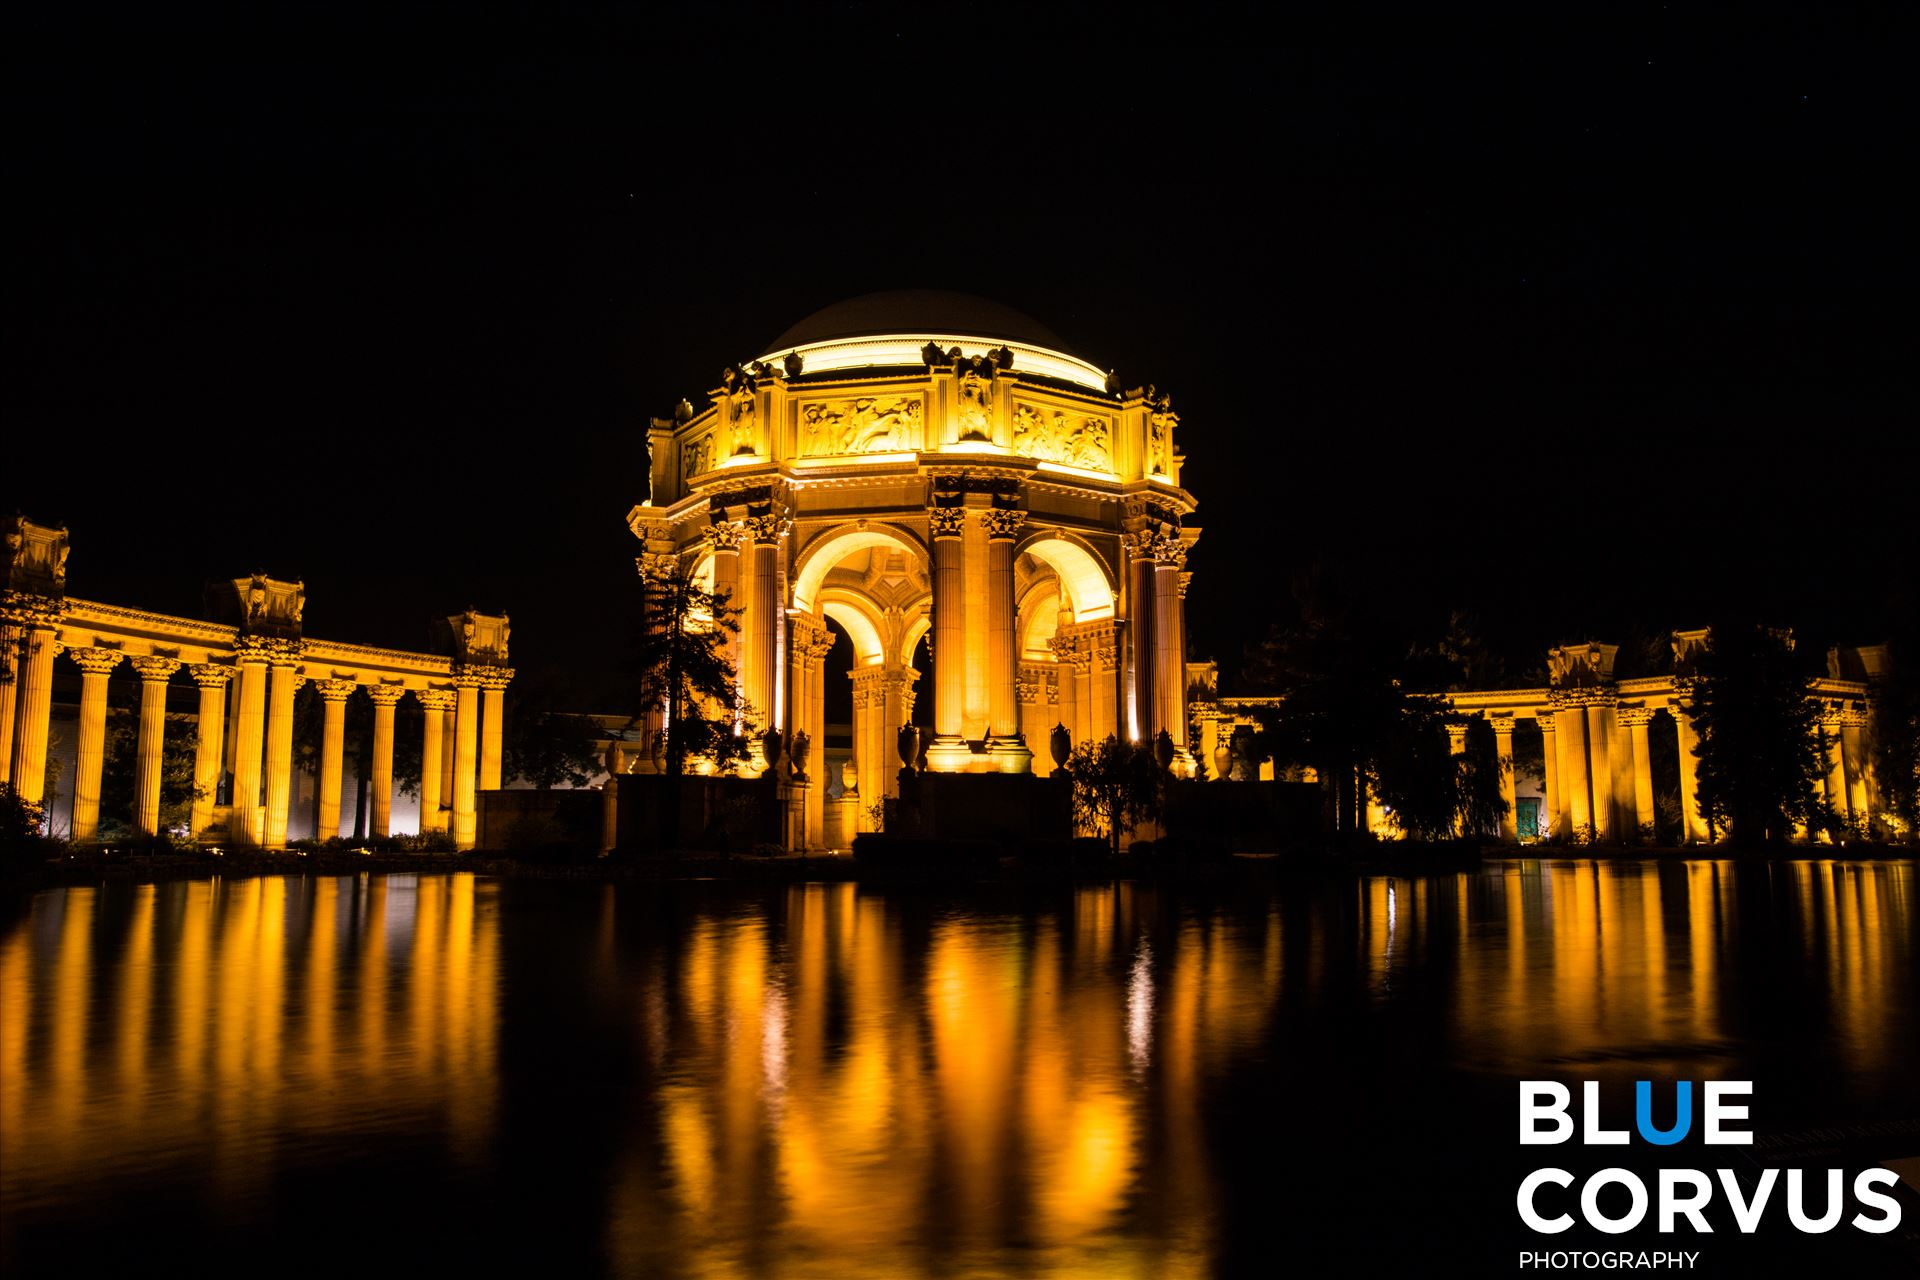 \x22Golden Reflection\x22 - Location: The Palace of Fine Arts in San Francisco, California by Eddie Zamora